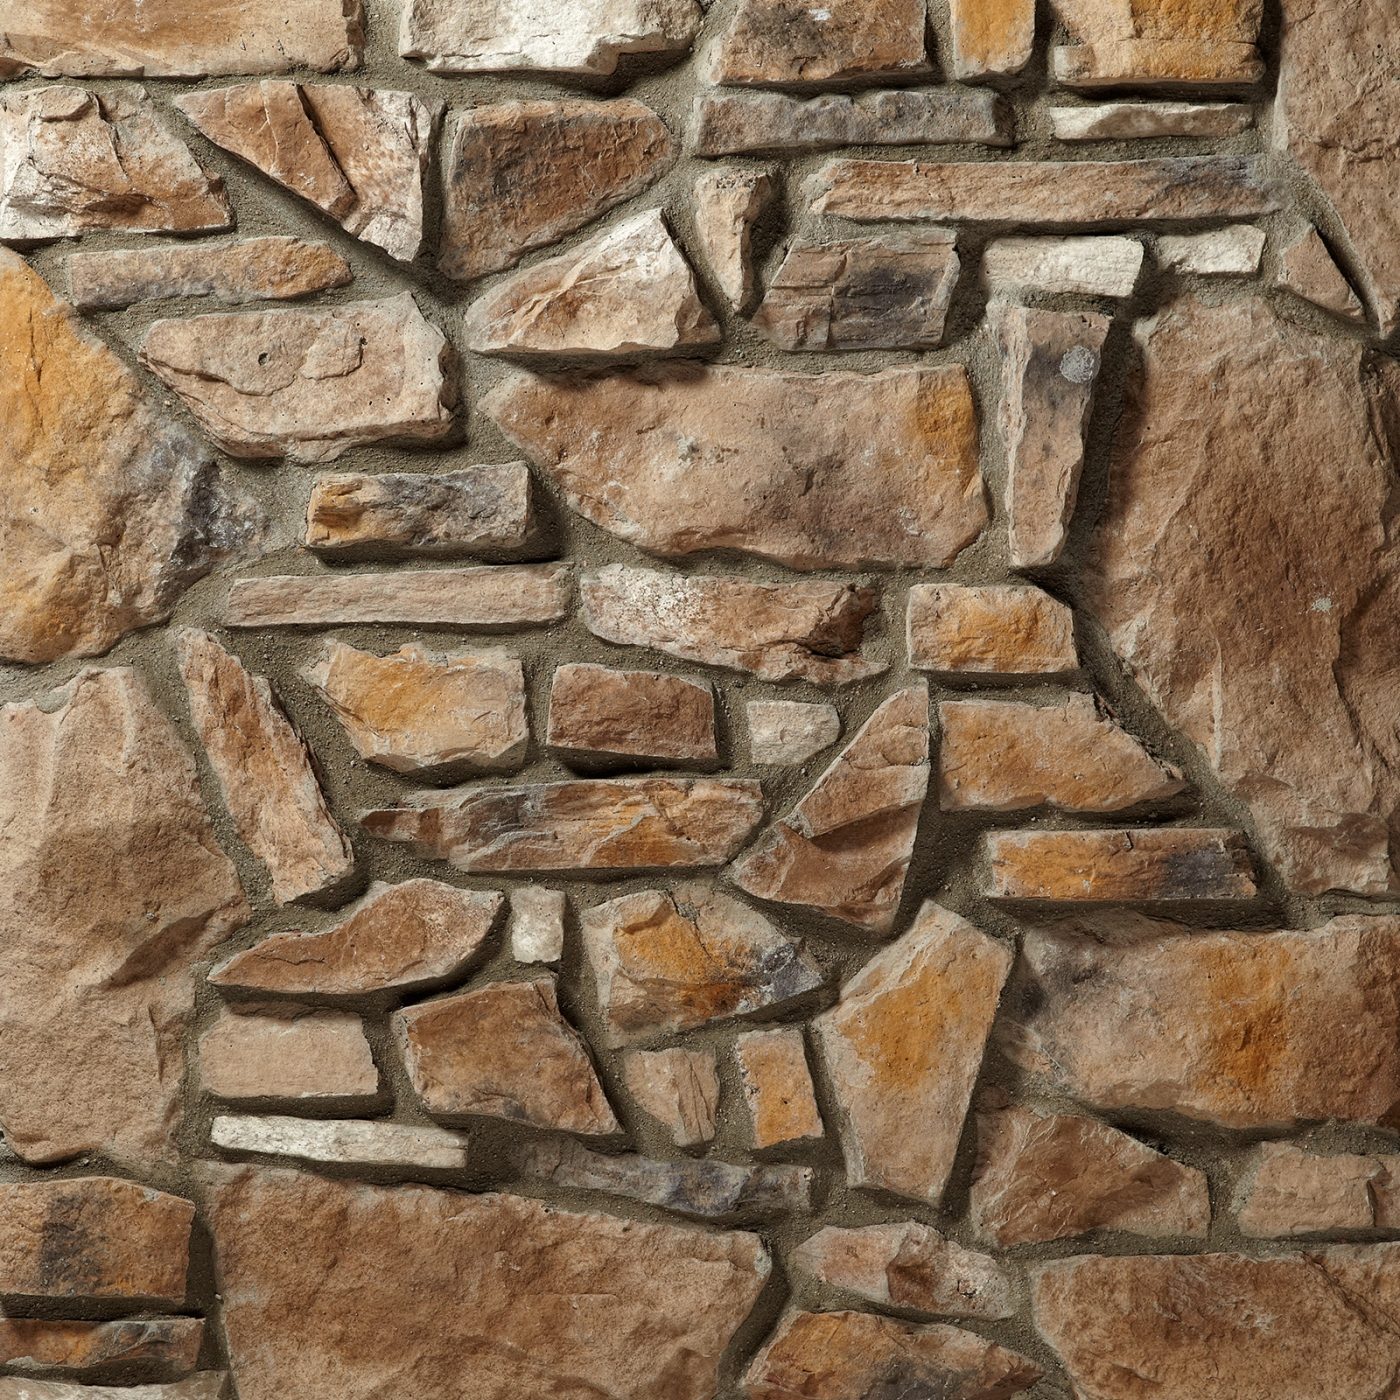 New England Chisel Rock Stone Veneer from Environmental StoneWorks